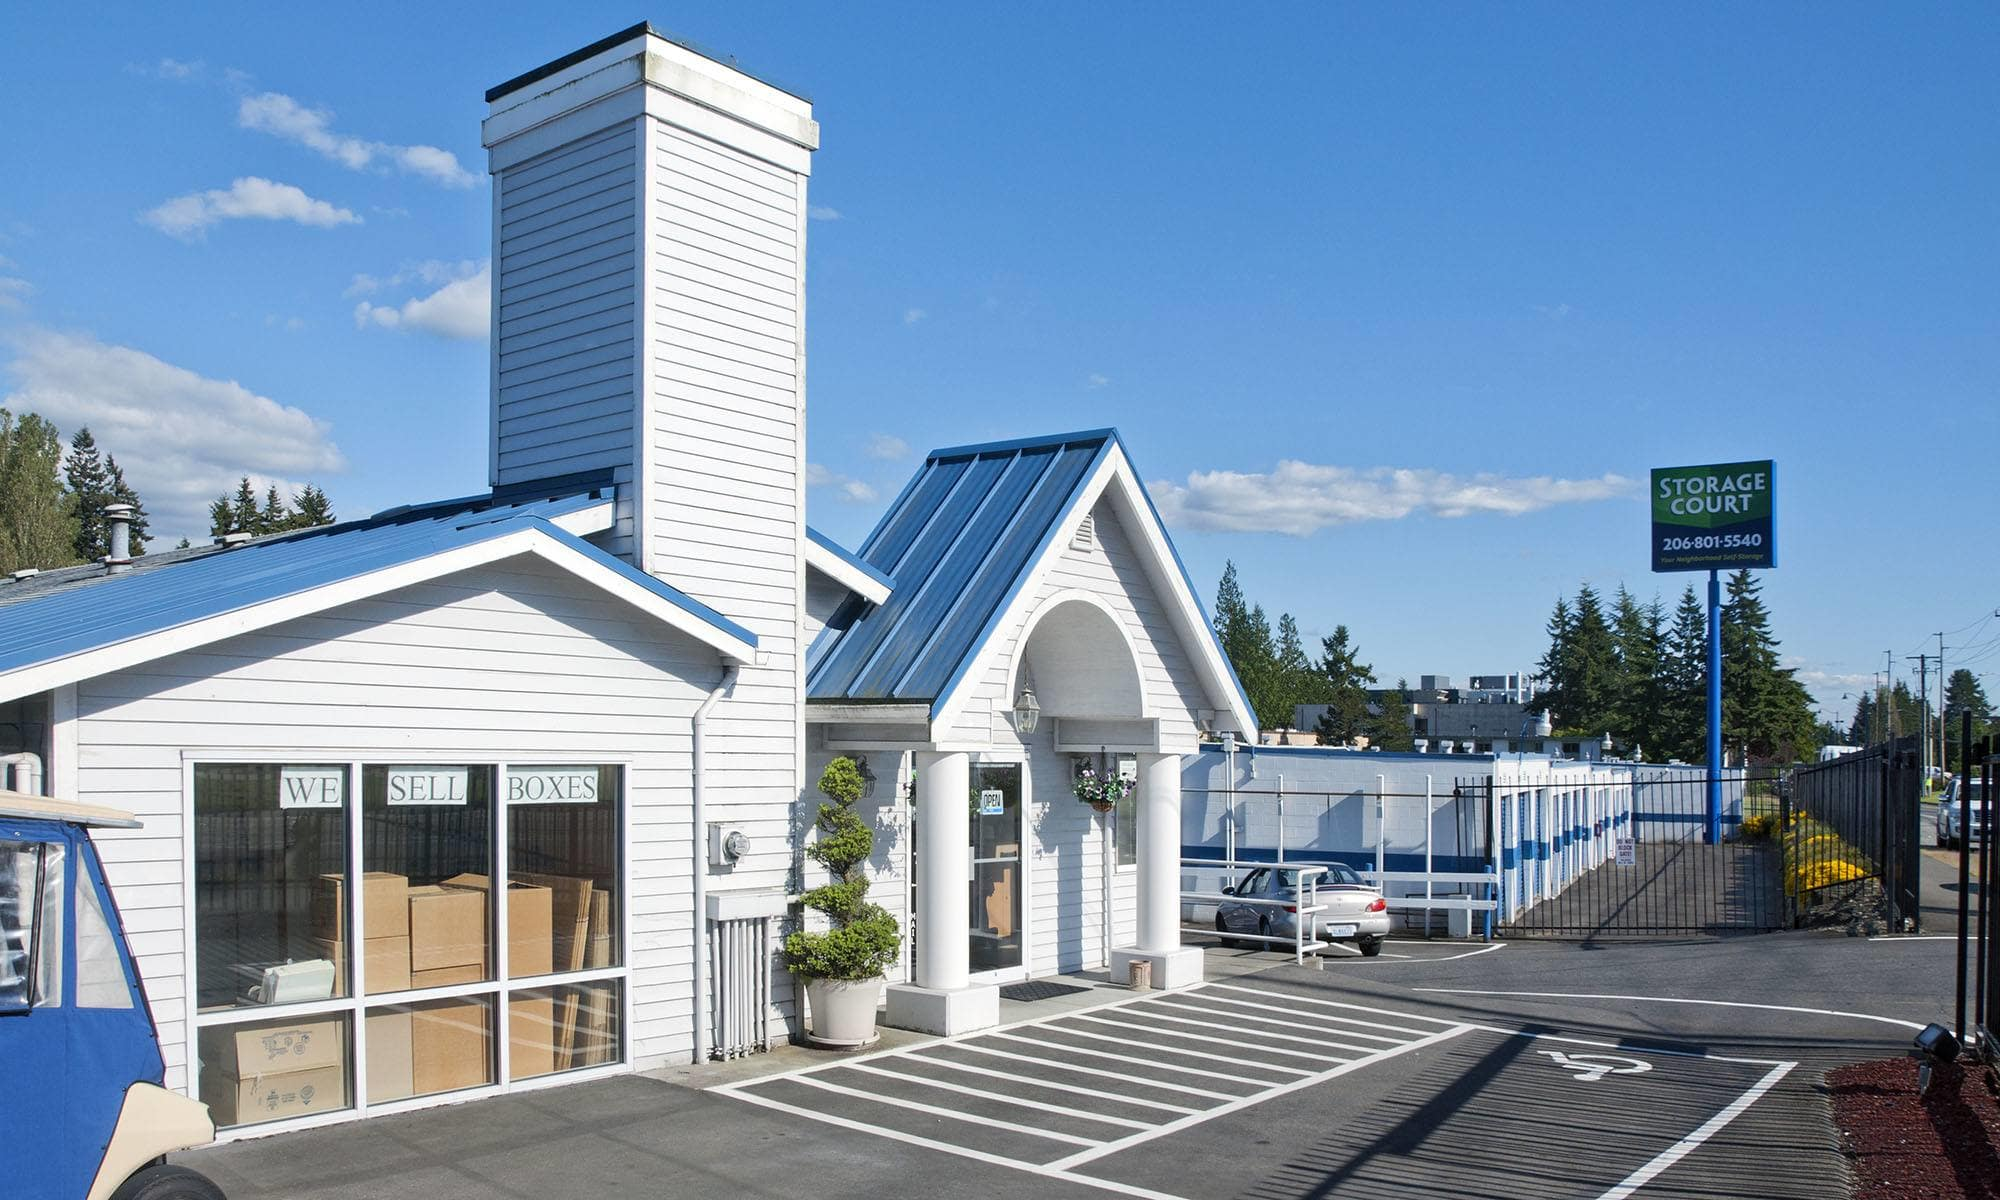 Self Storage In Shoreline WA